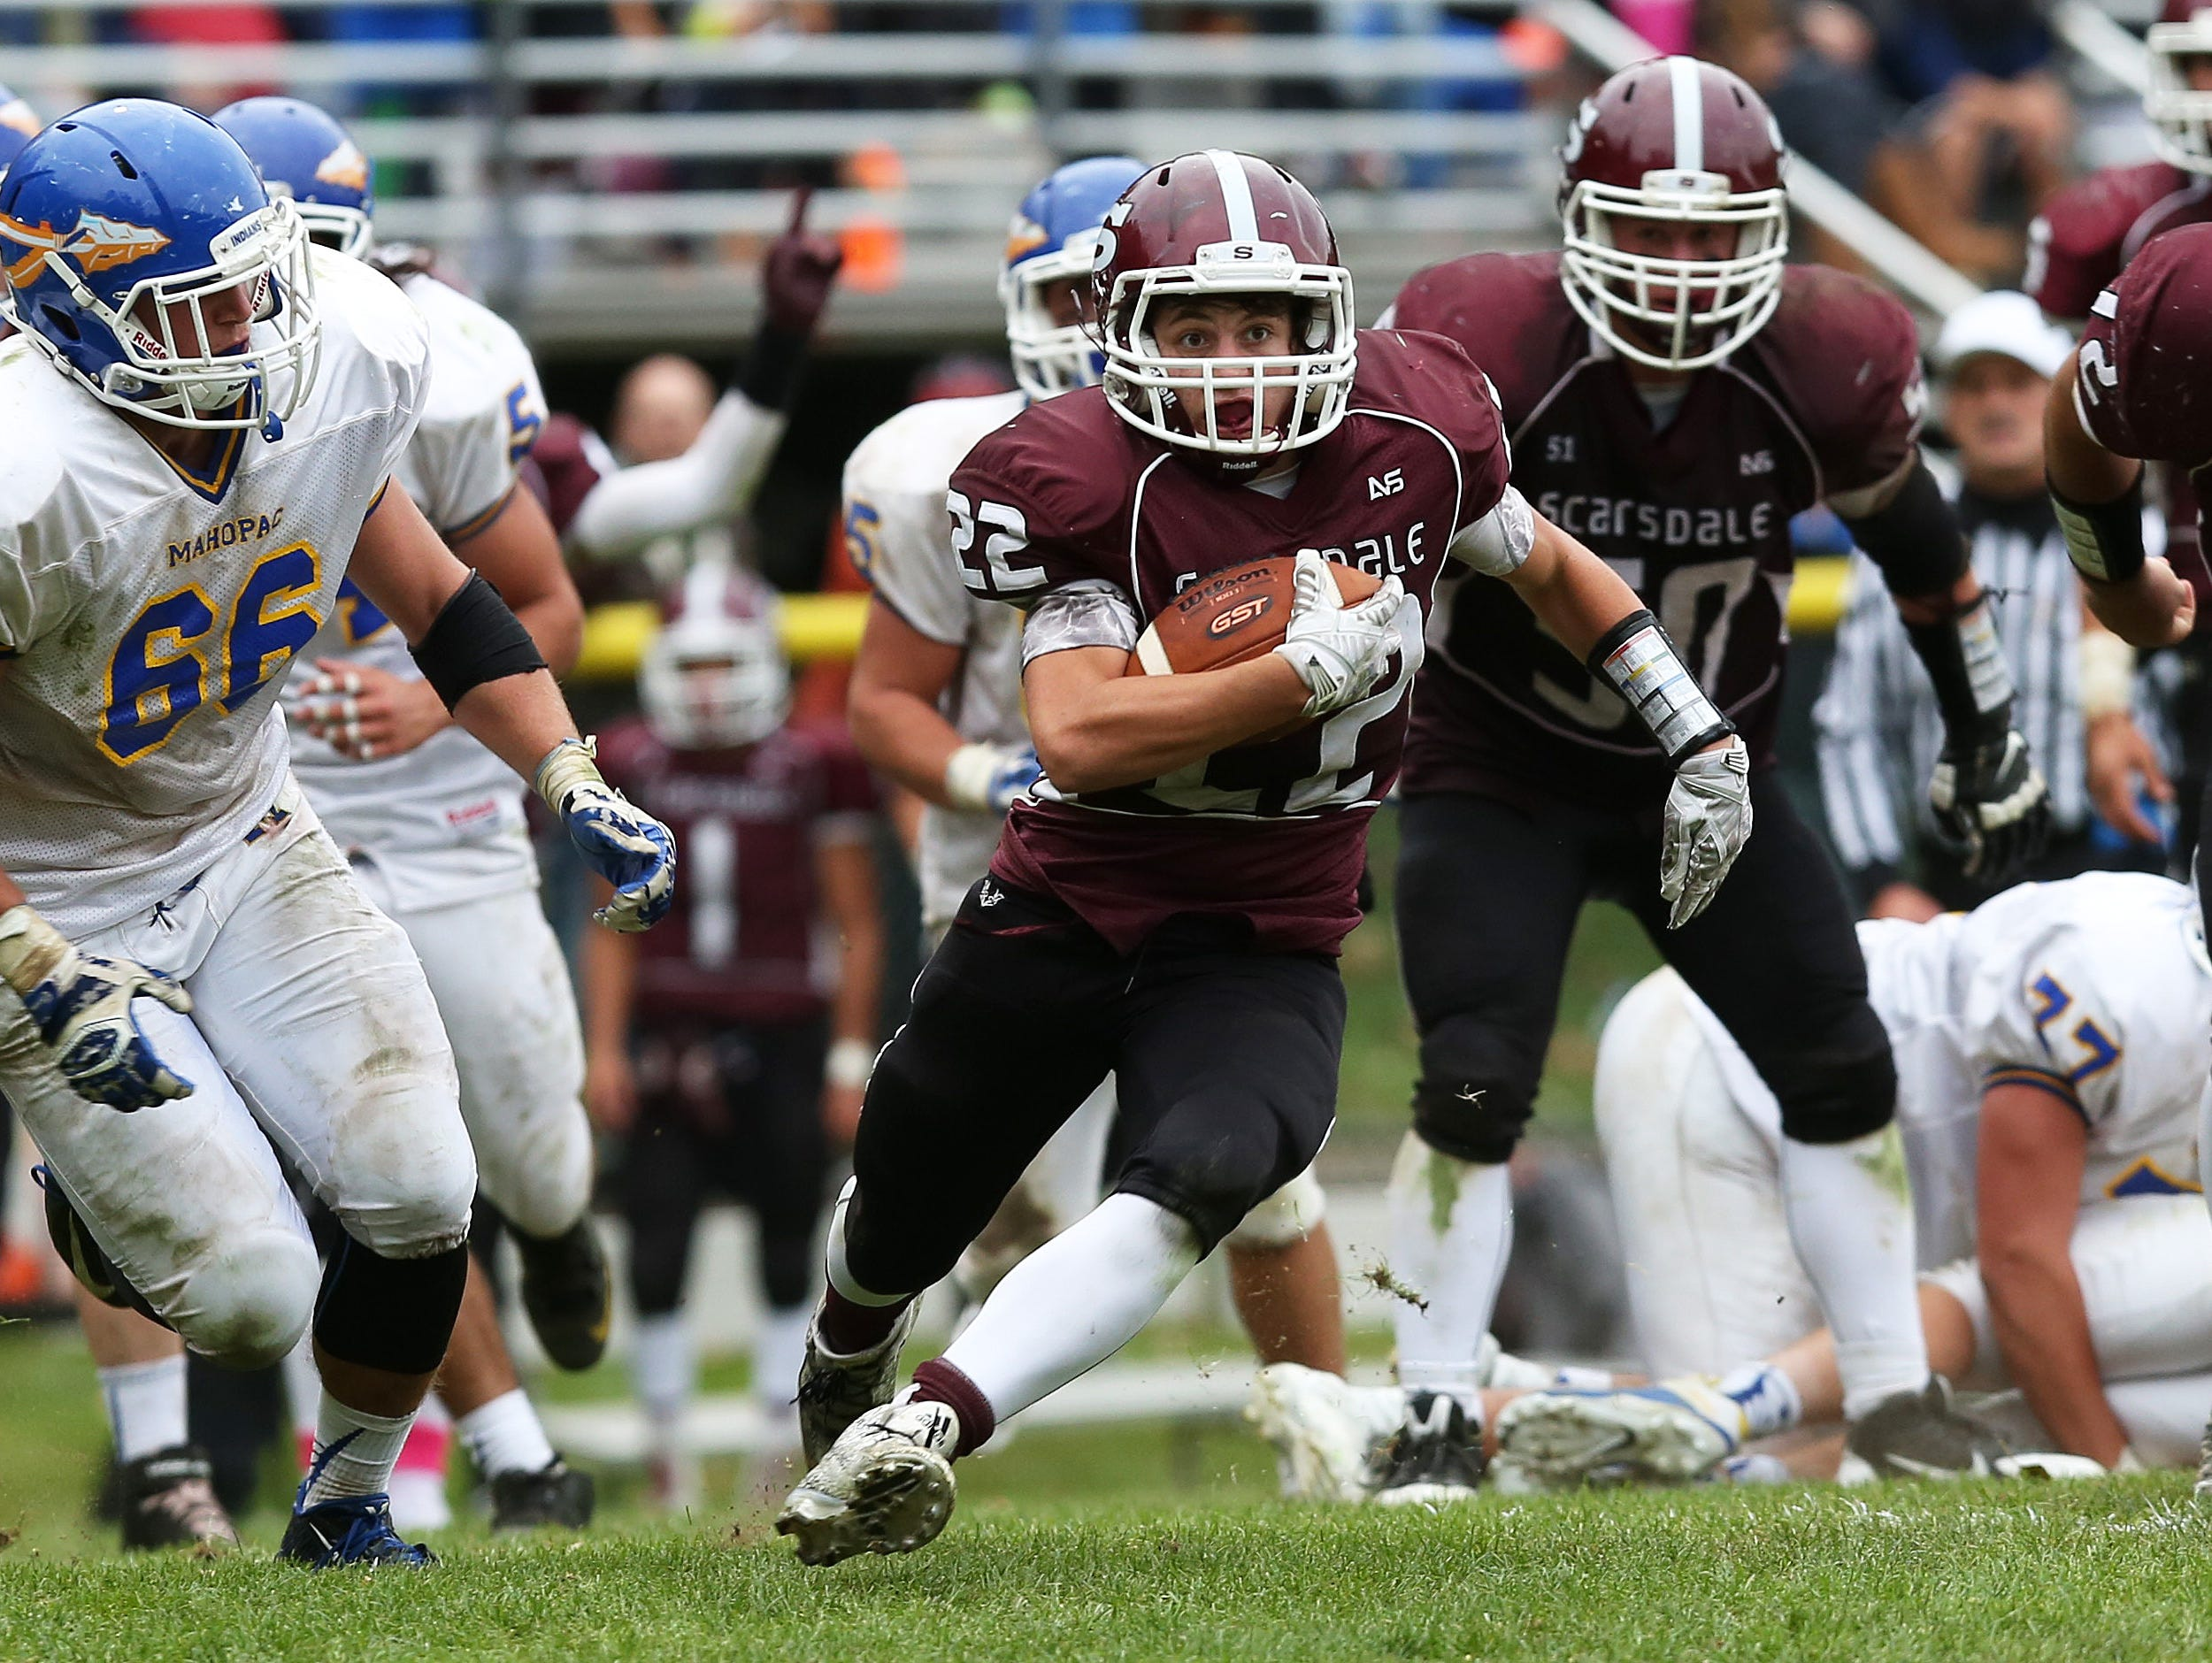 Scarsdale's Nick Leone (22) breaks free on a second half touchdown run against Mahopac during football playoff game at Scarsdale High School Oct. 24, 2015. Scarsdale won the game 33-28.